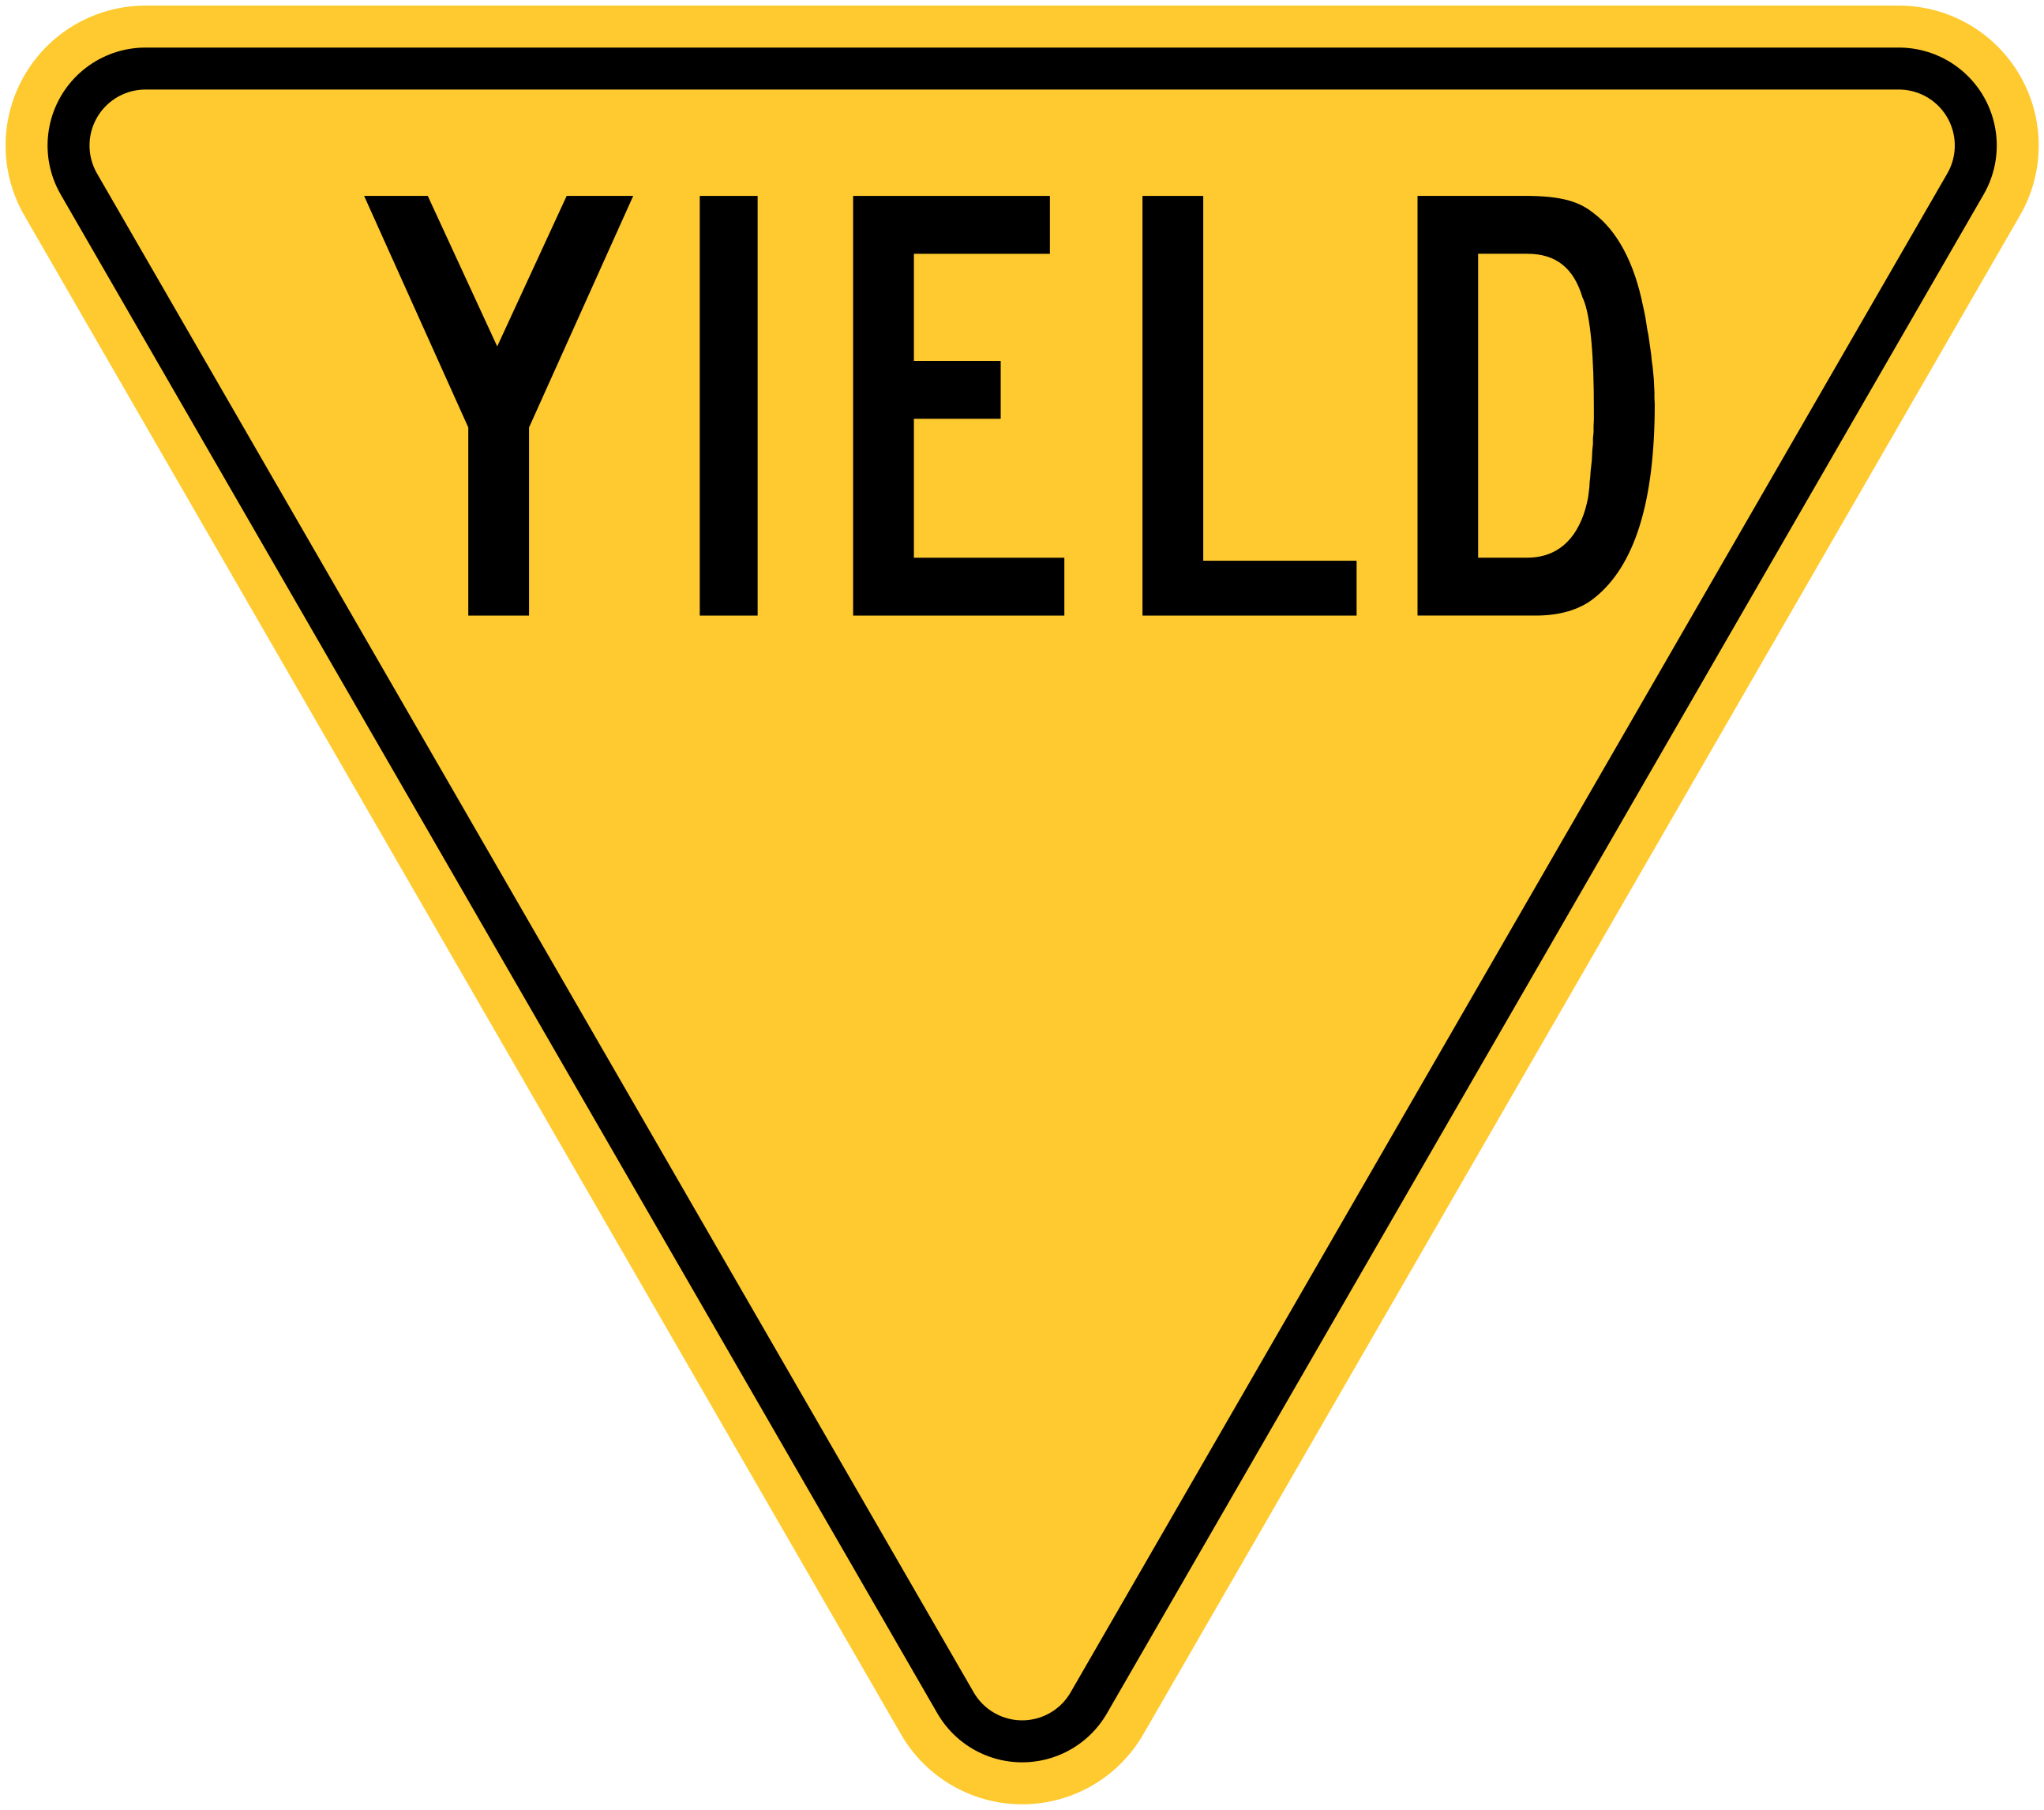 Yield sign png. File united states v